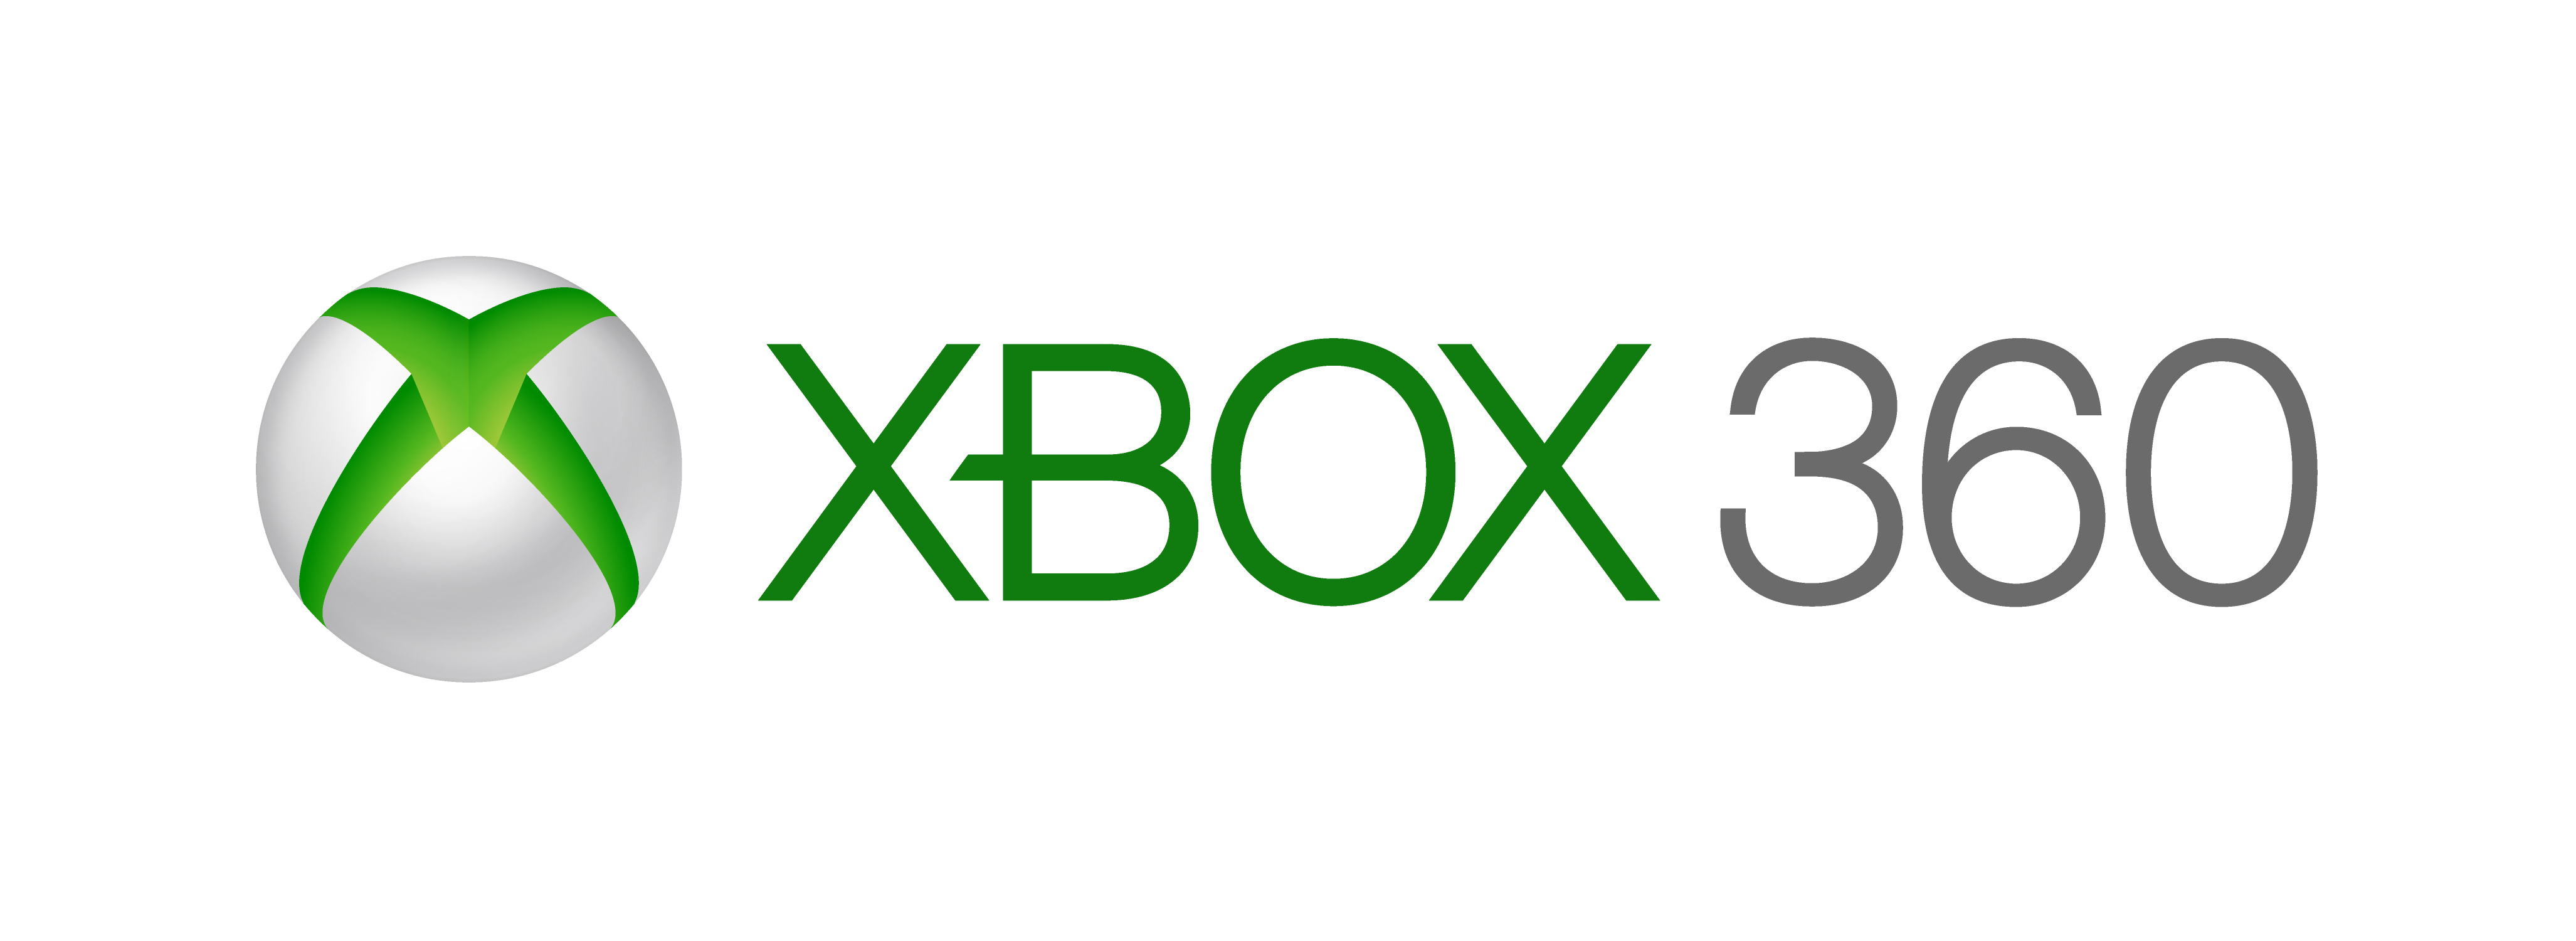 PNG Clipart File Xbox Logo